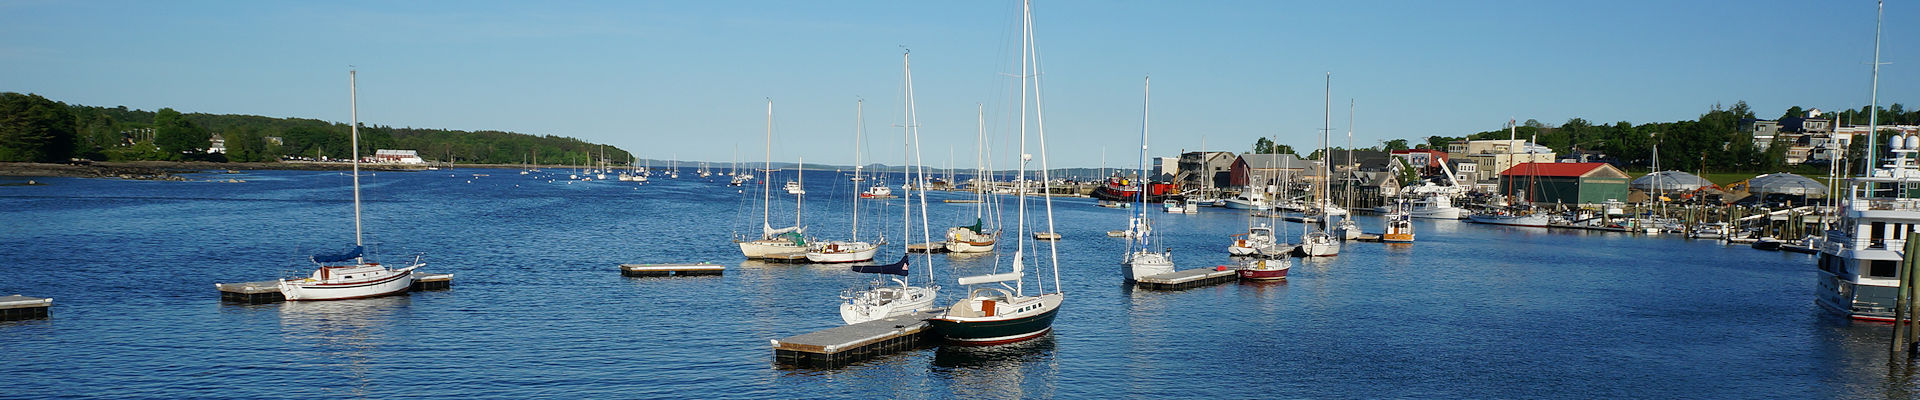 Belfast Maine Harbor